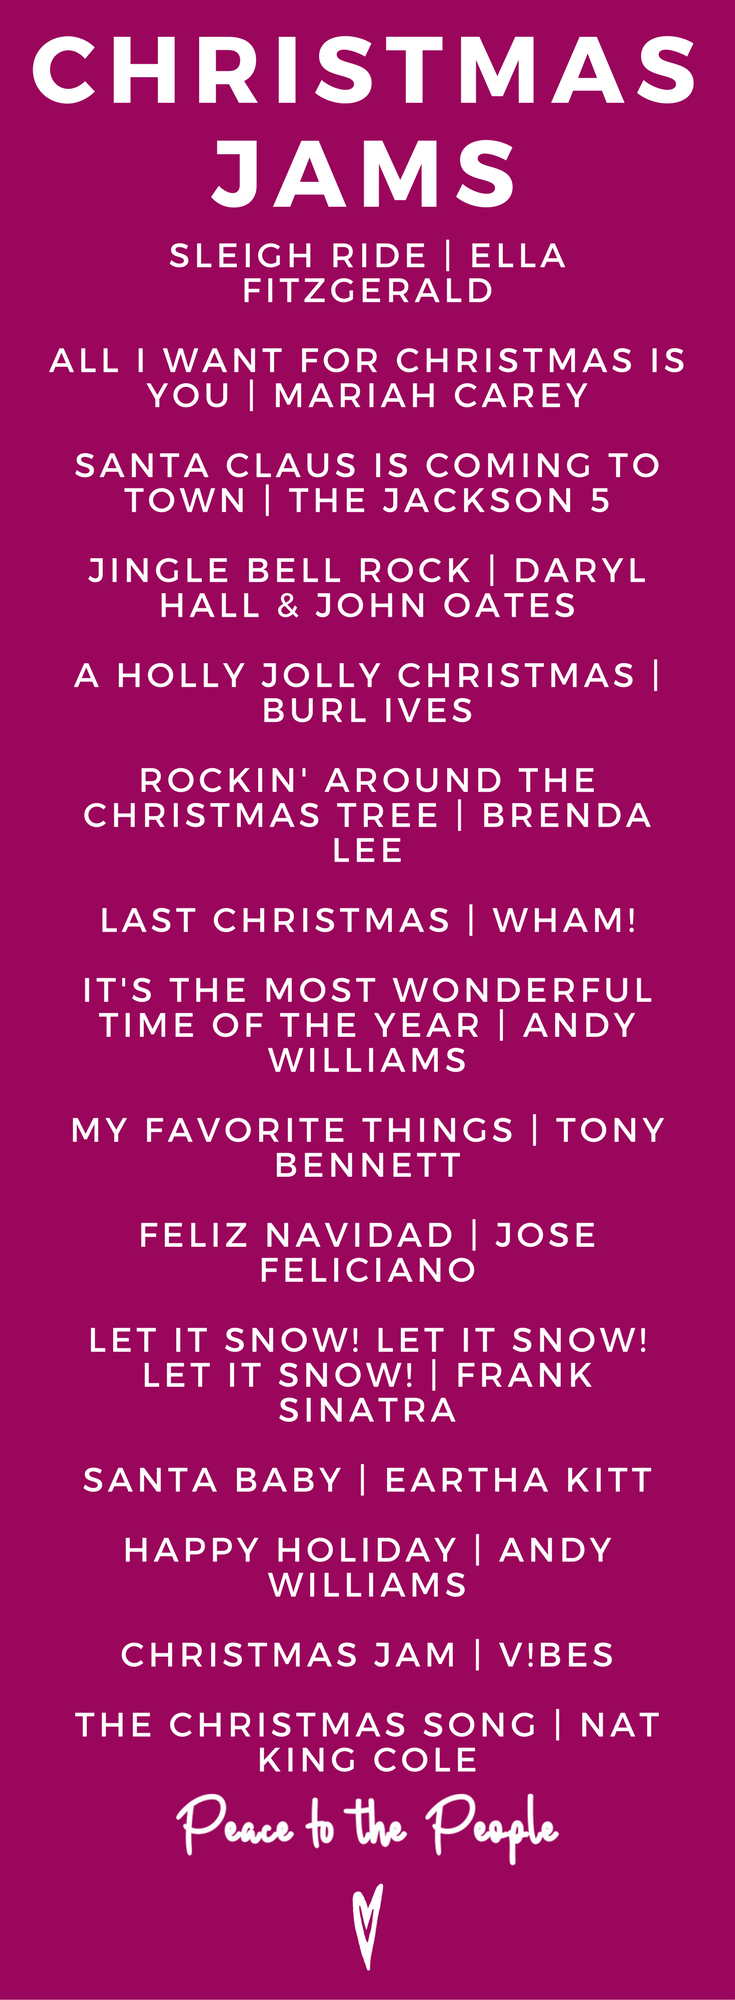 Christmas Jams Songs Playlists Music Happy Holidays Peace to the People.png